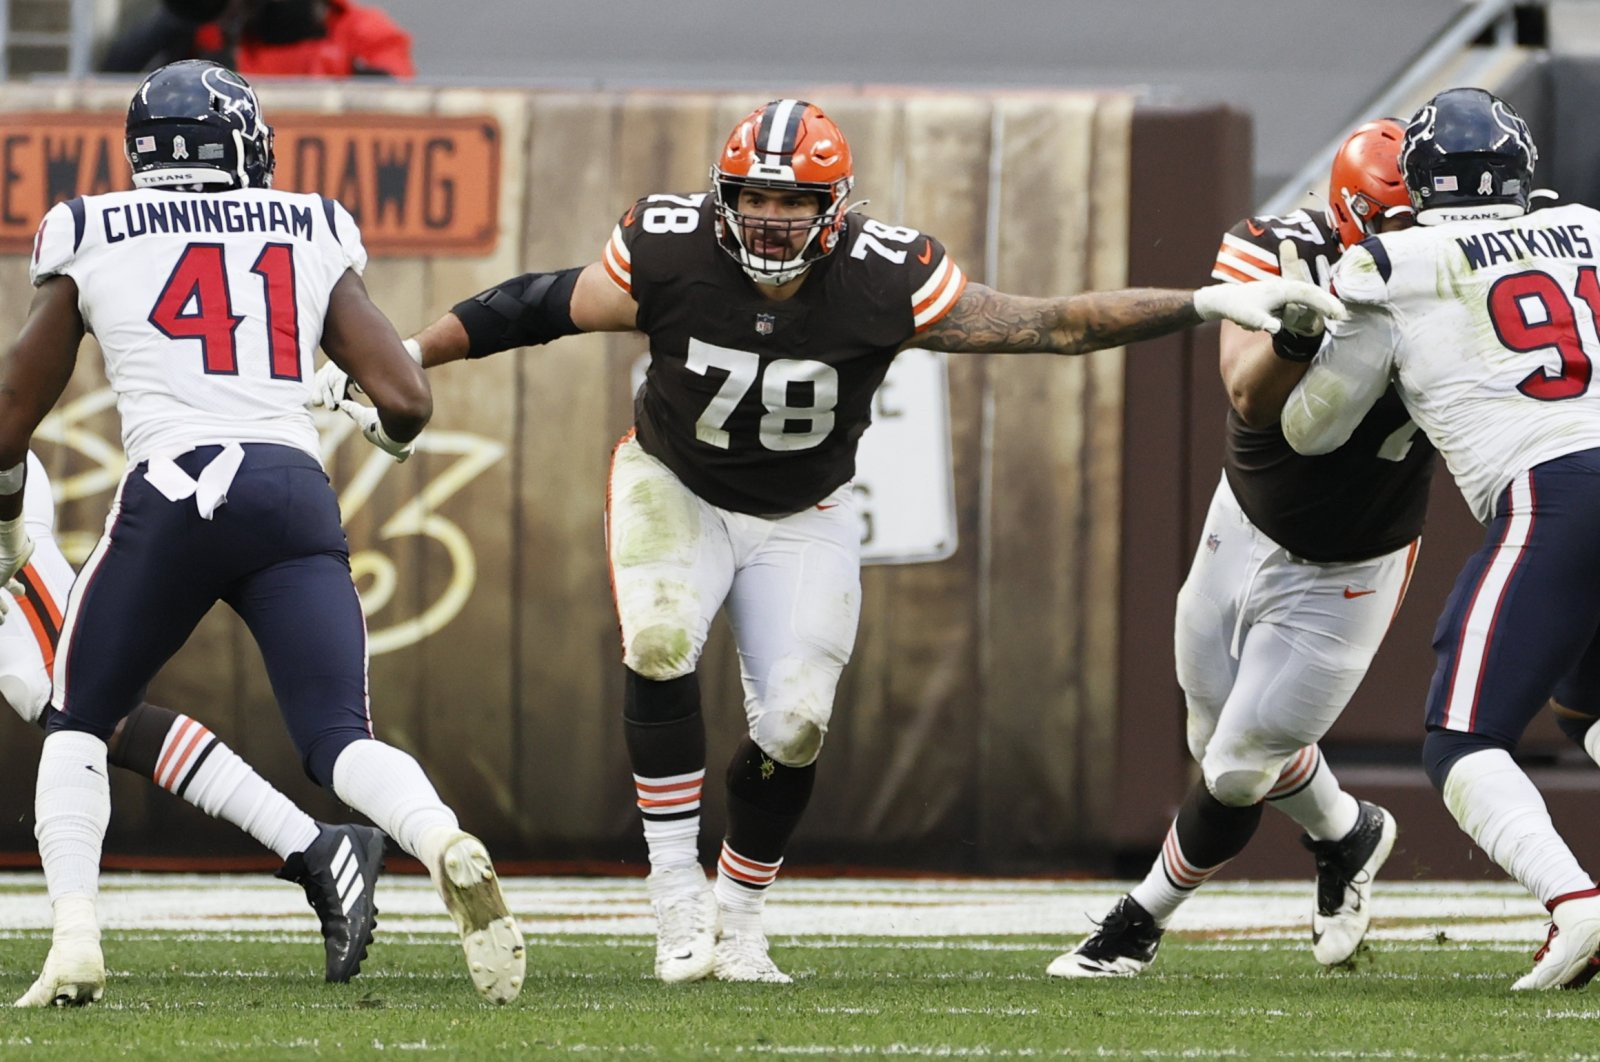 """Cleveland Browns' Jack Conklin (C), who has since been placed on the team's """"COVID-19 list,"""" during a match in Cleveland, U.S., Nov. 15, 2020. (AP PHOTO)"""